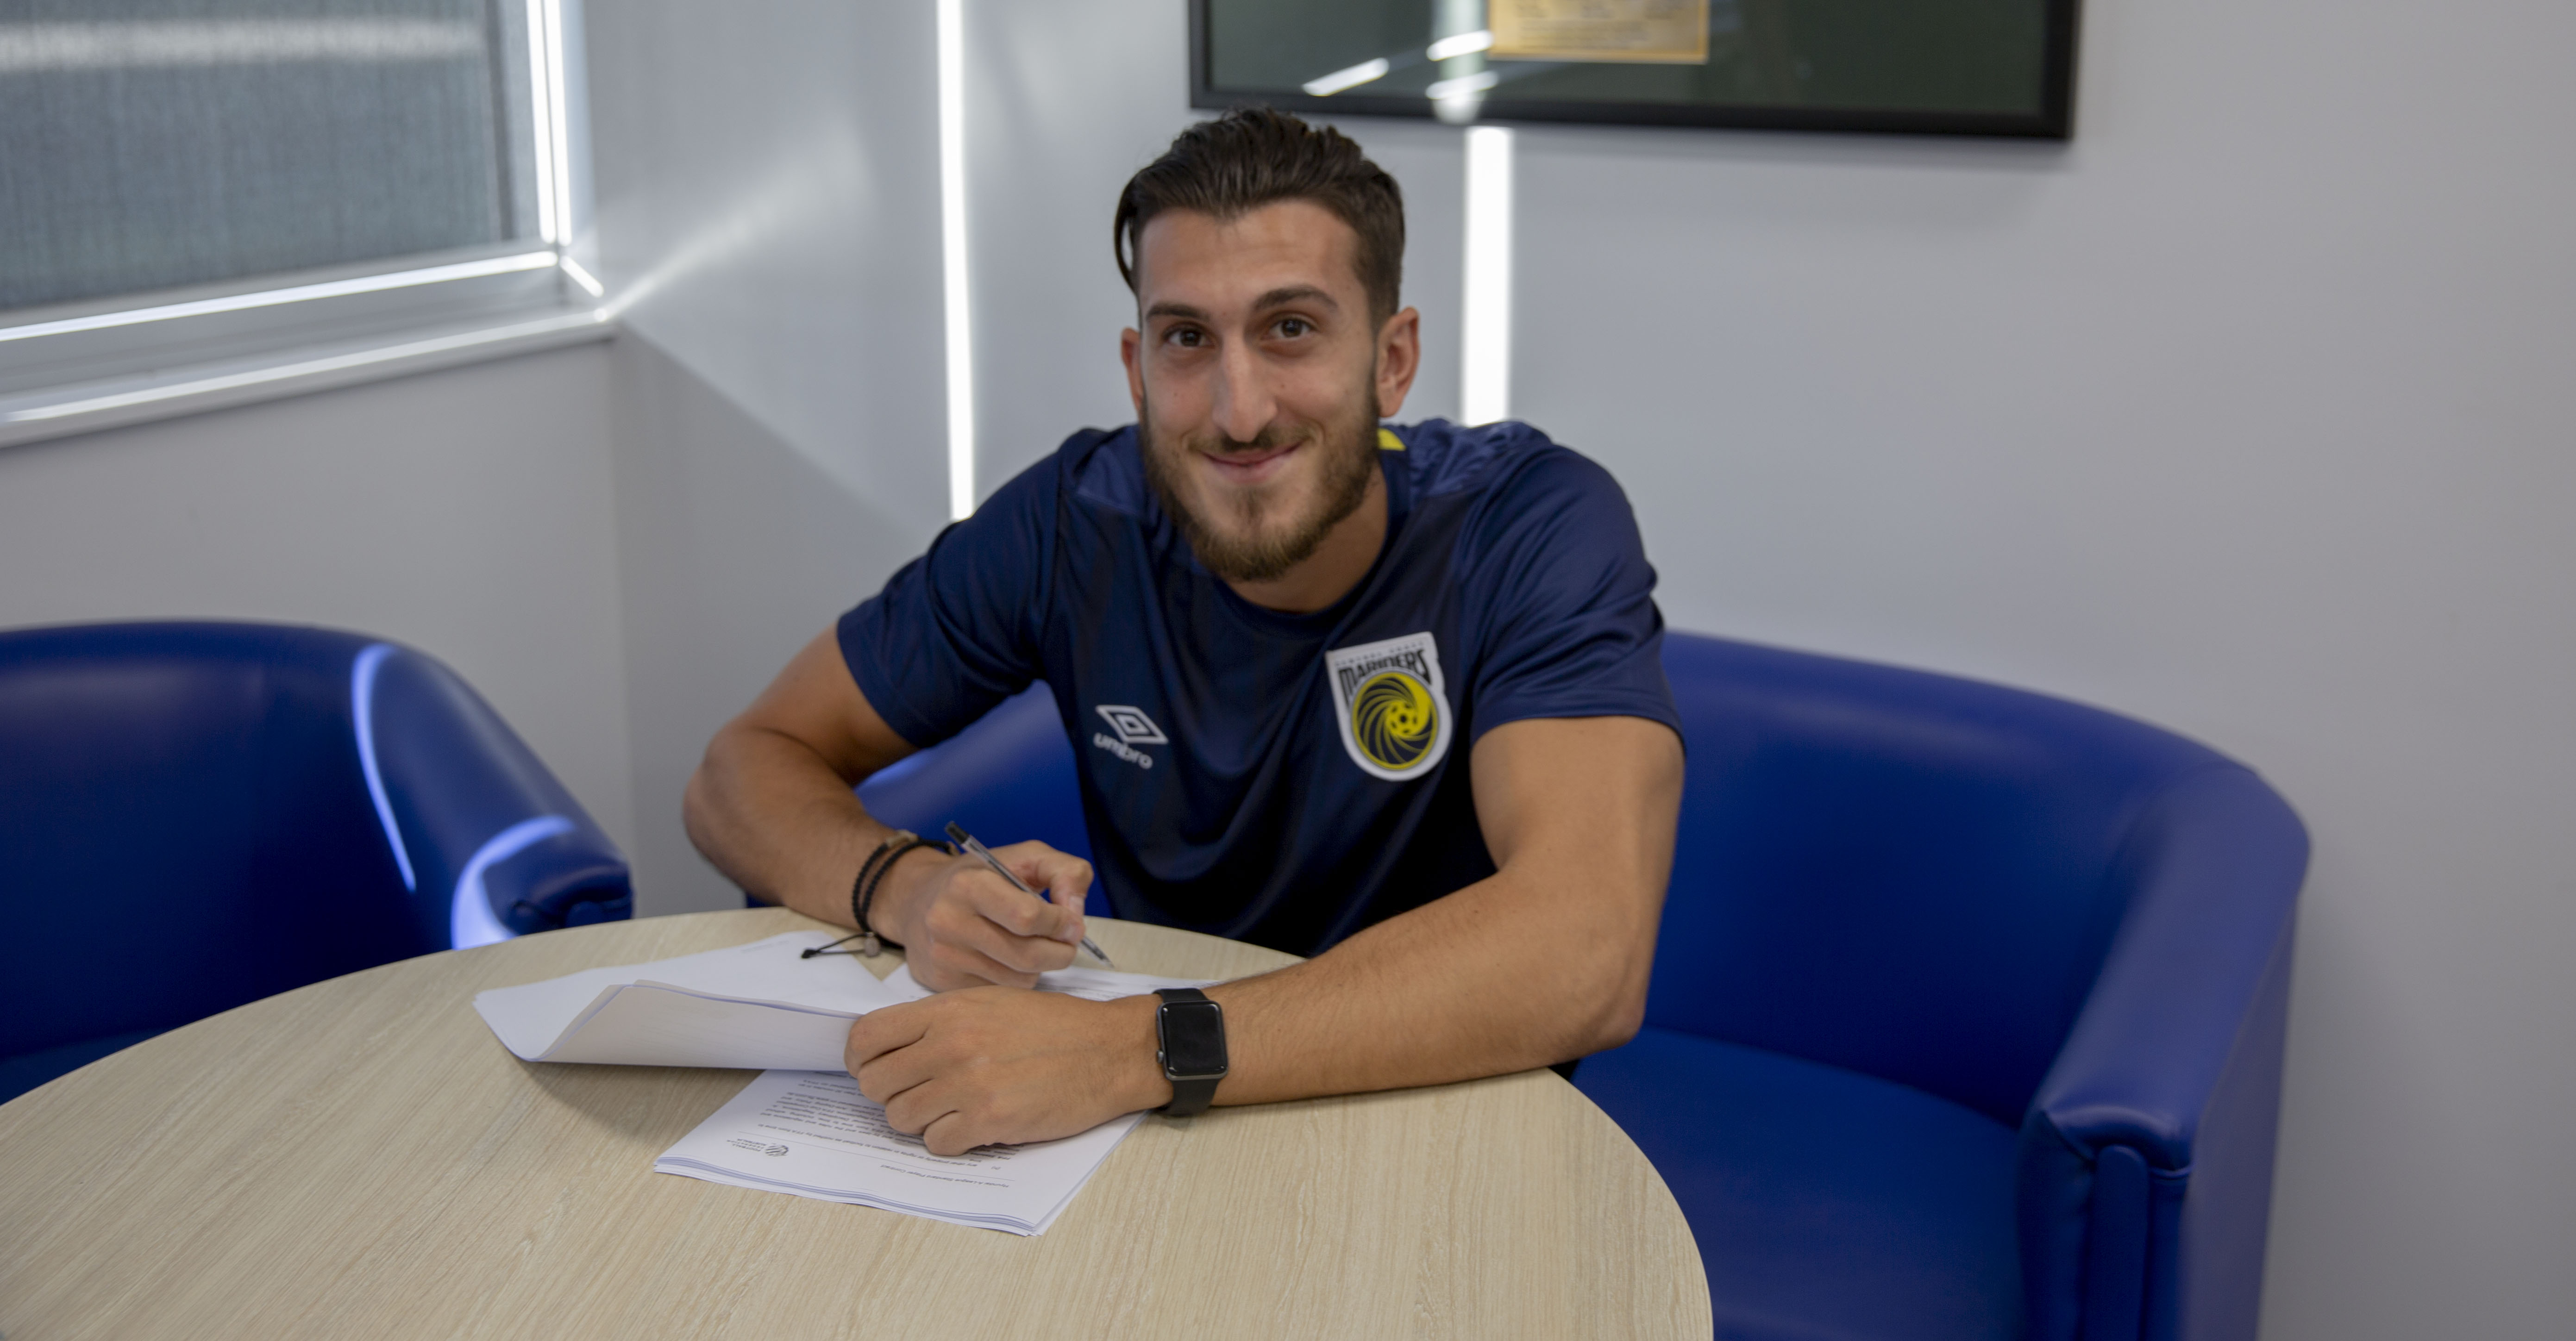 Giancarlo Gallifuoco signs for the Central Coast Mariners